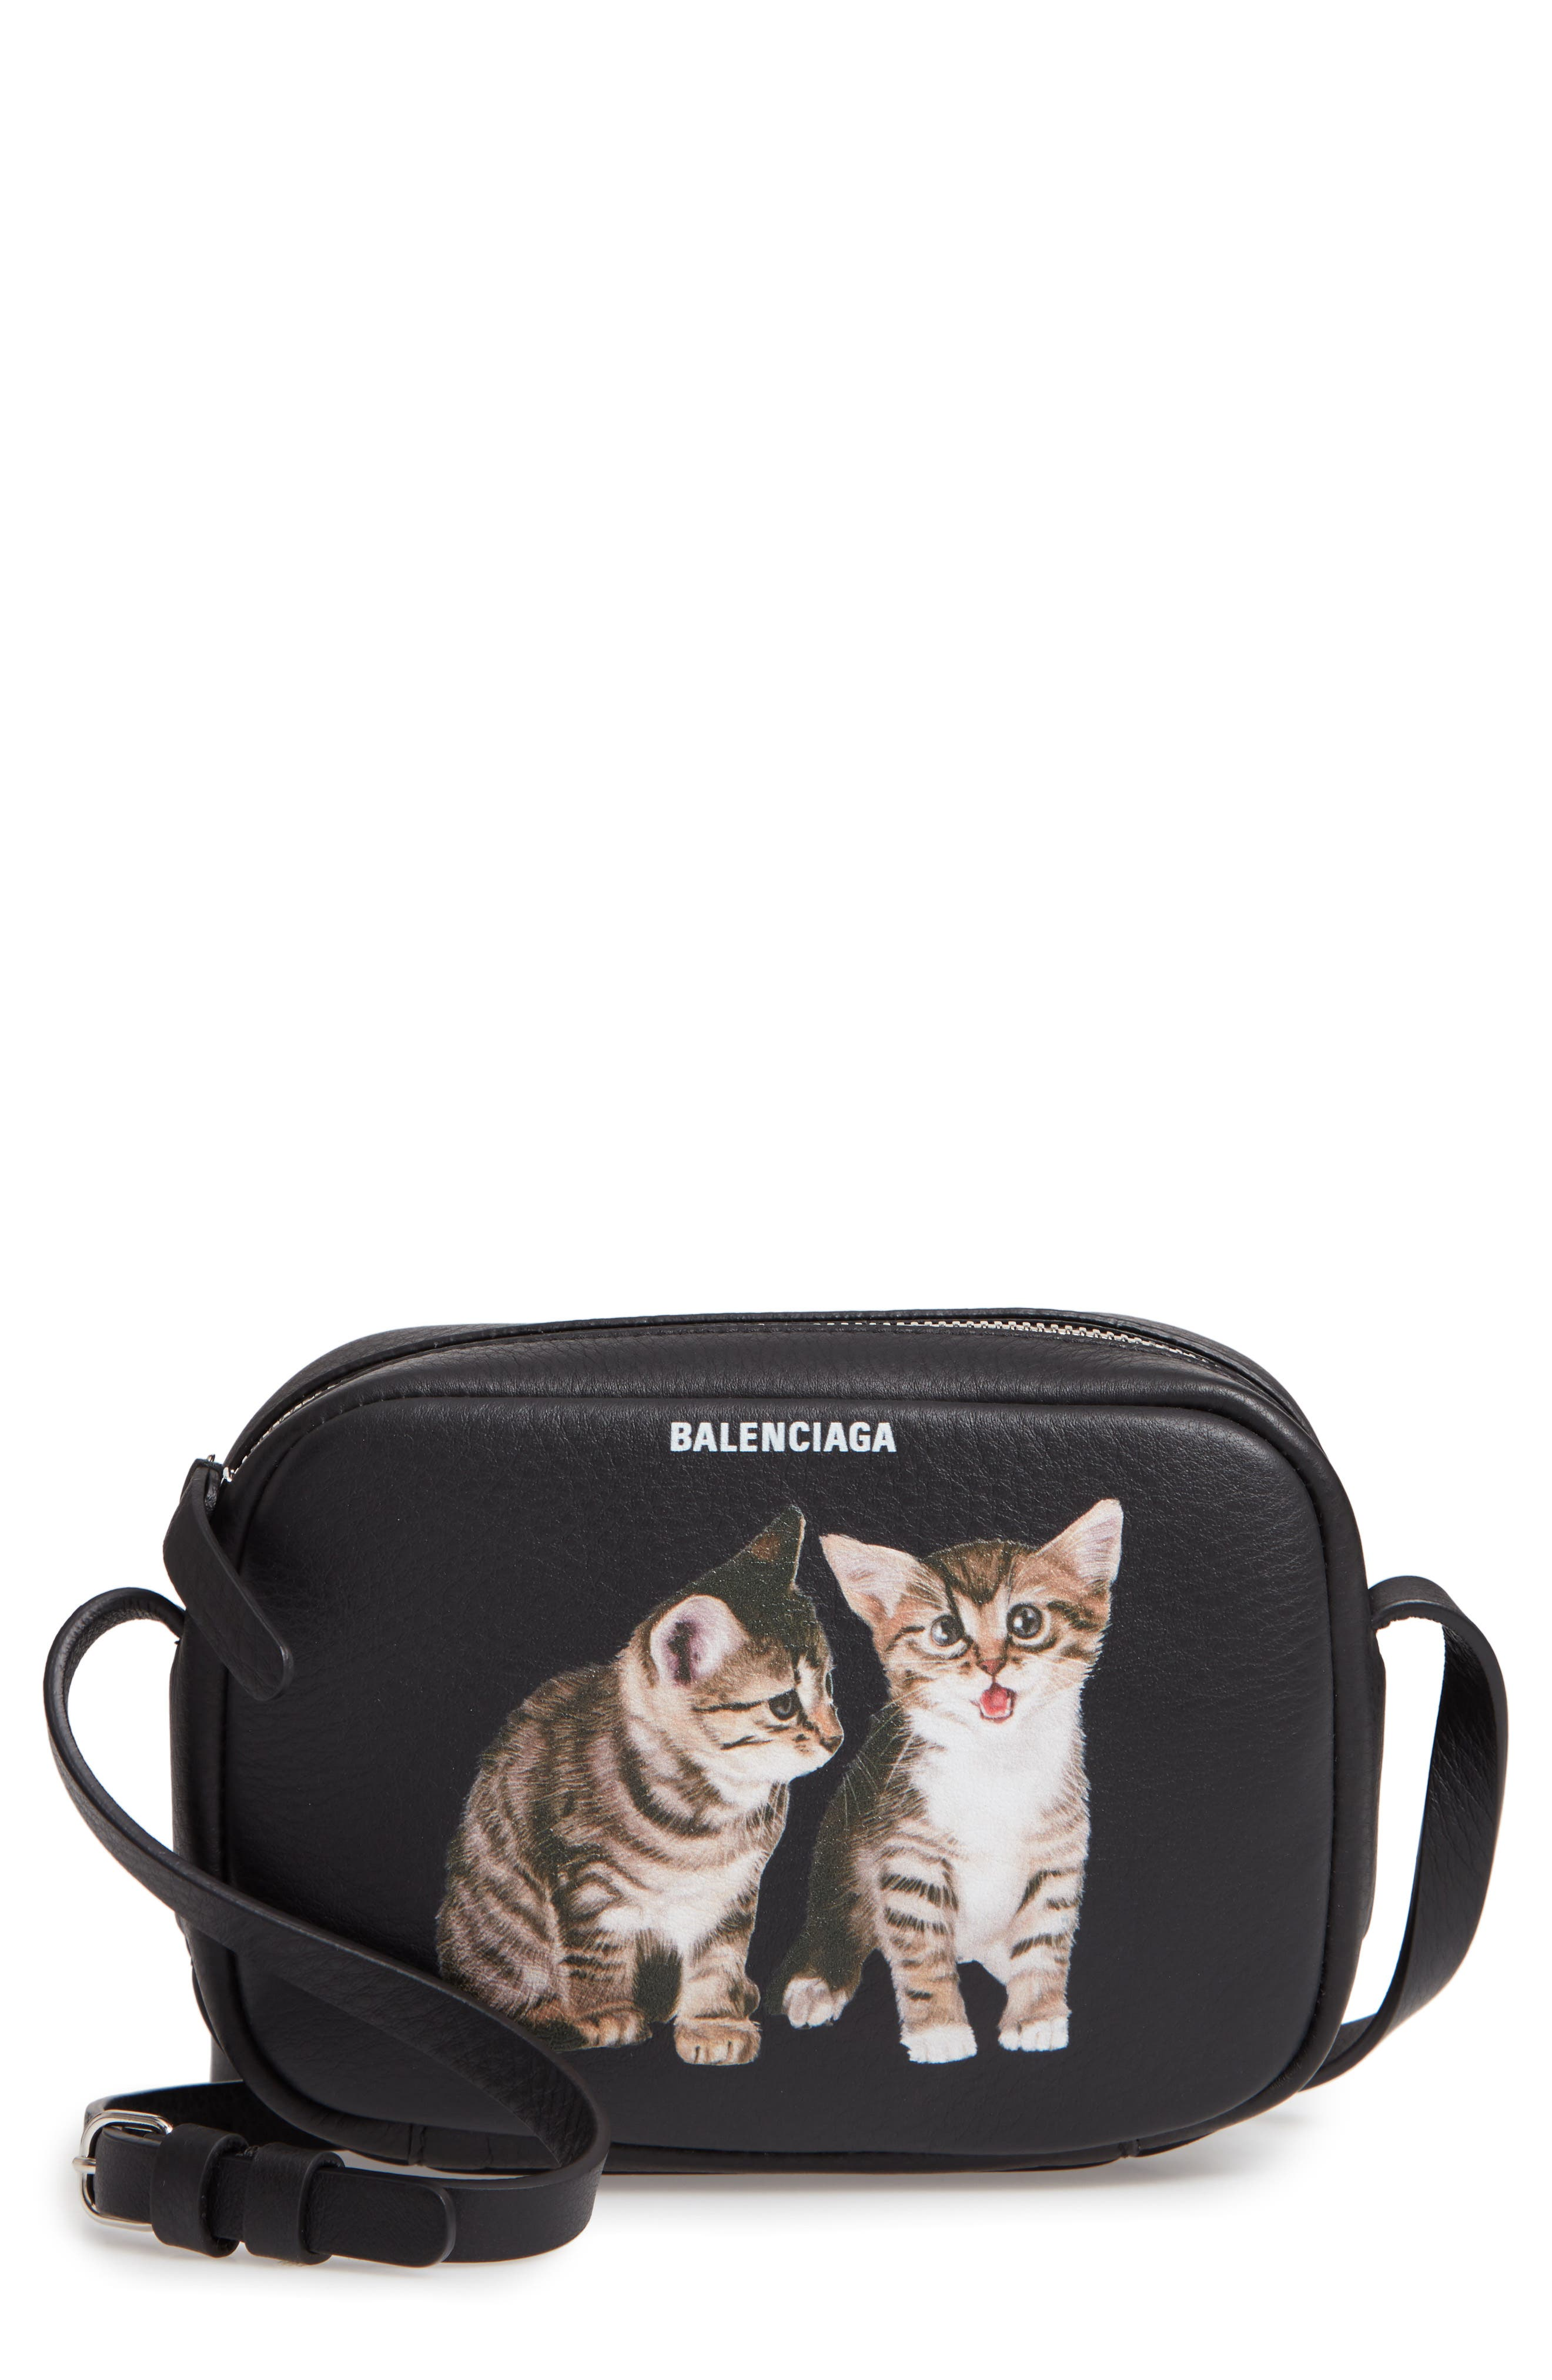 Extra Small Kittens Calfskin Leather Camera Bag,                             Main thumbnail 1, color,                             NOIR/ BLANC